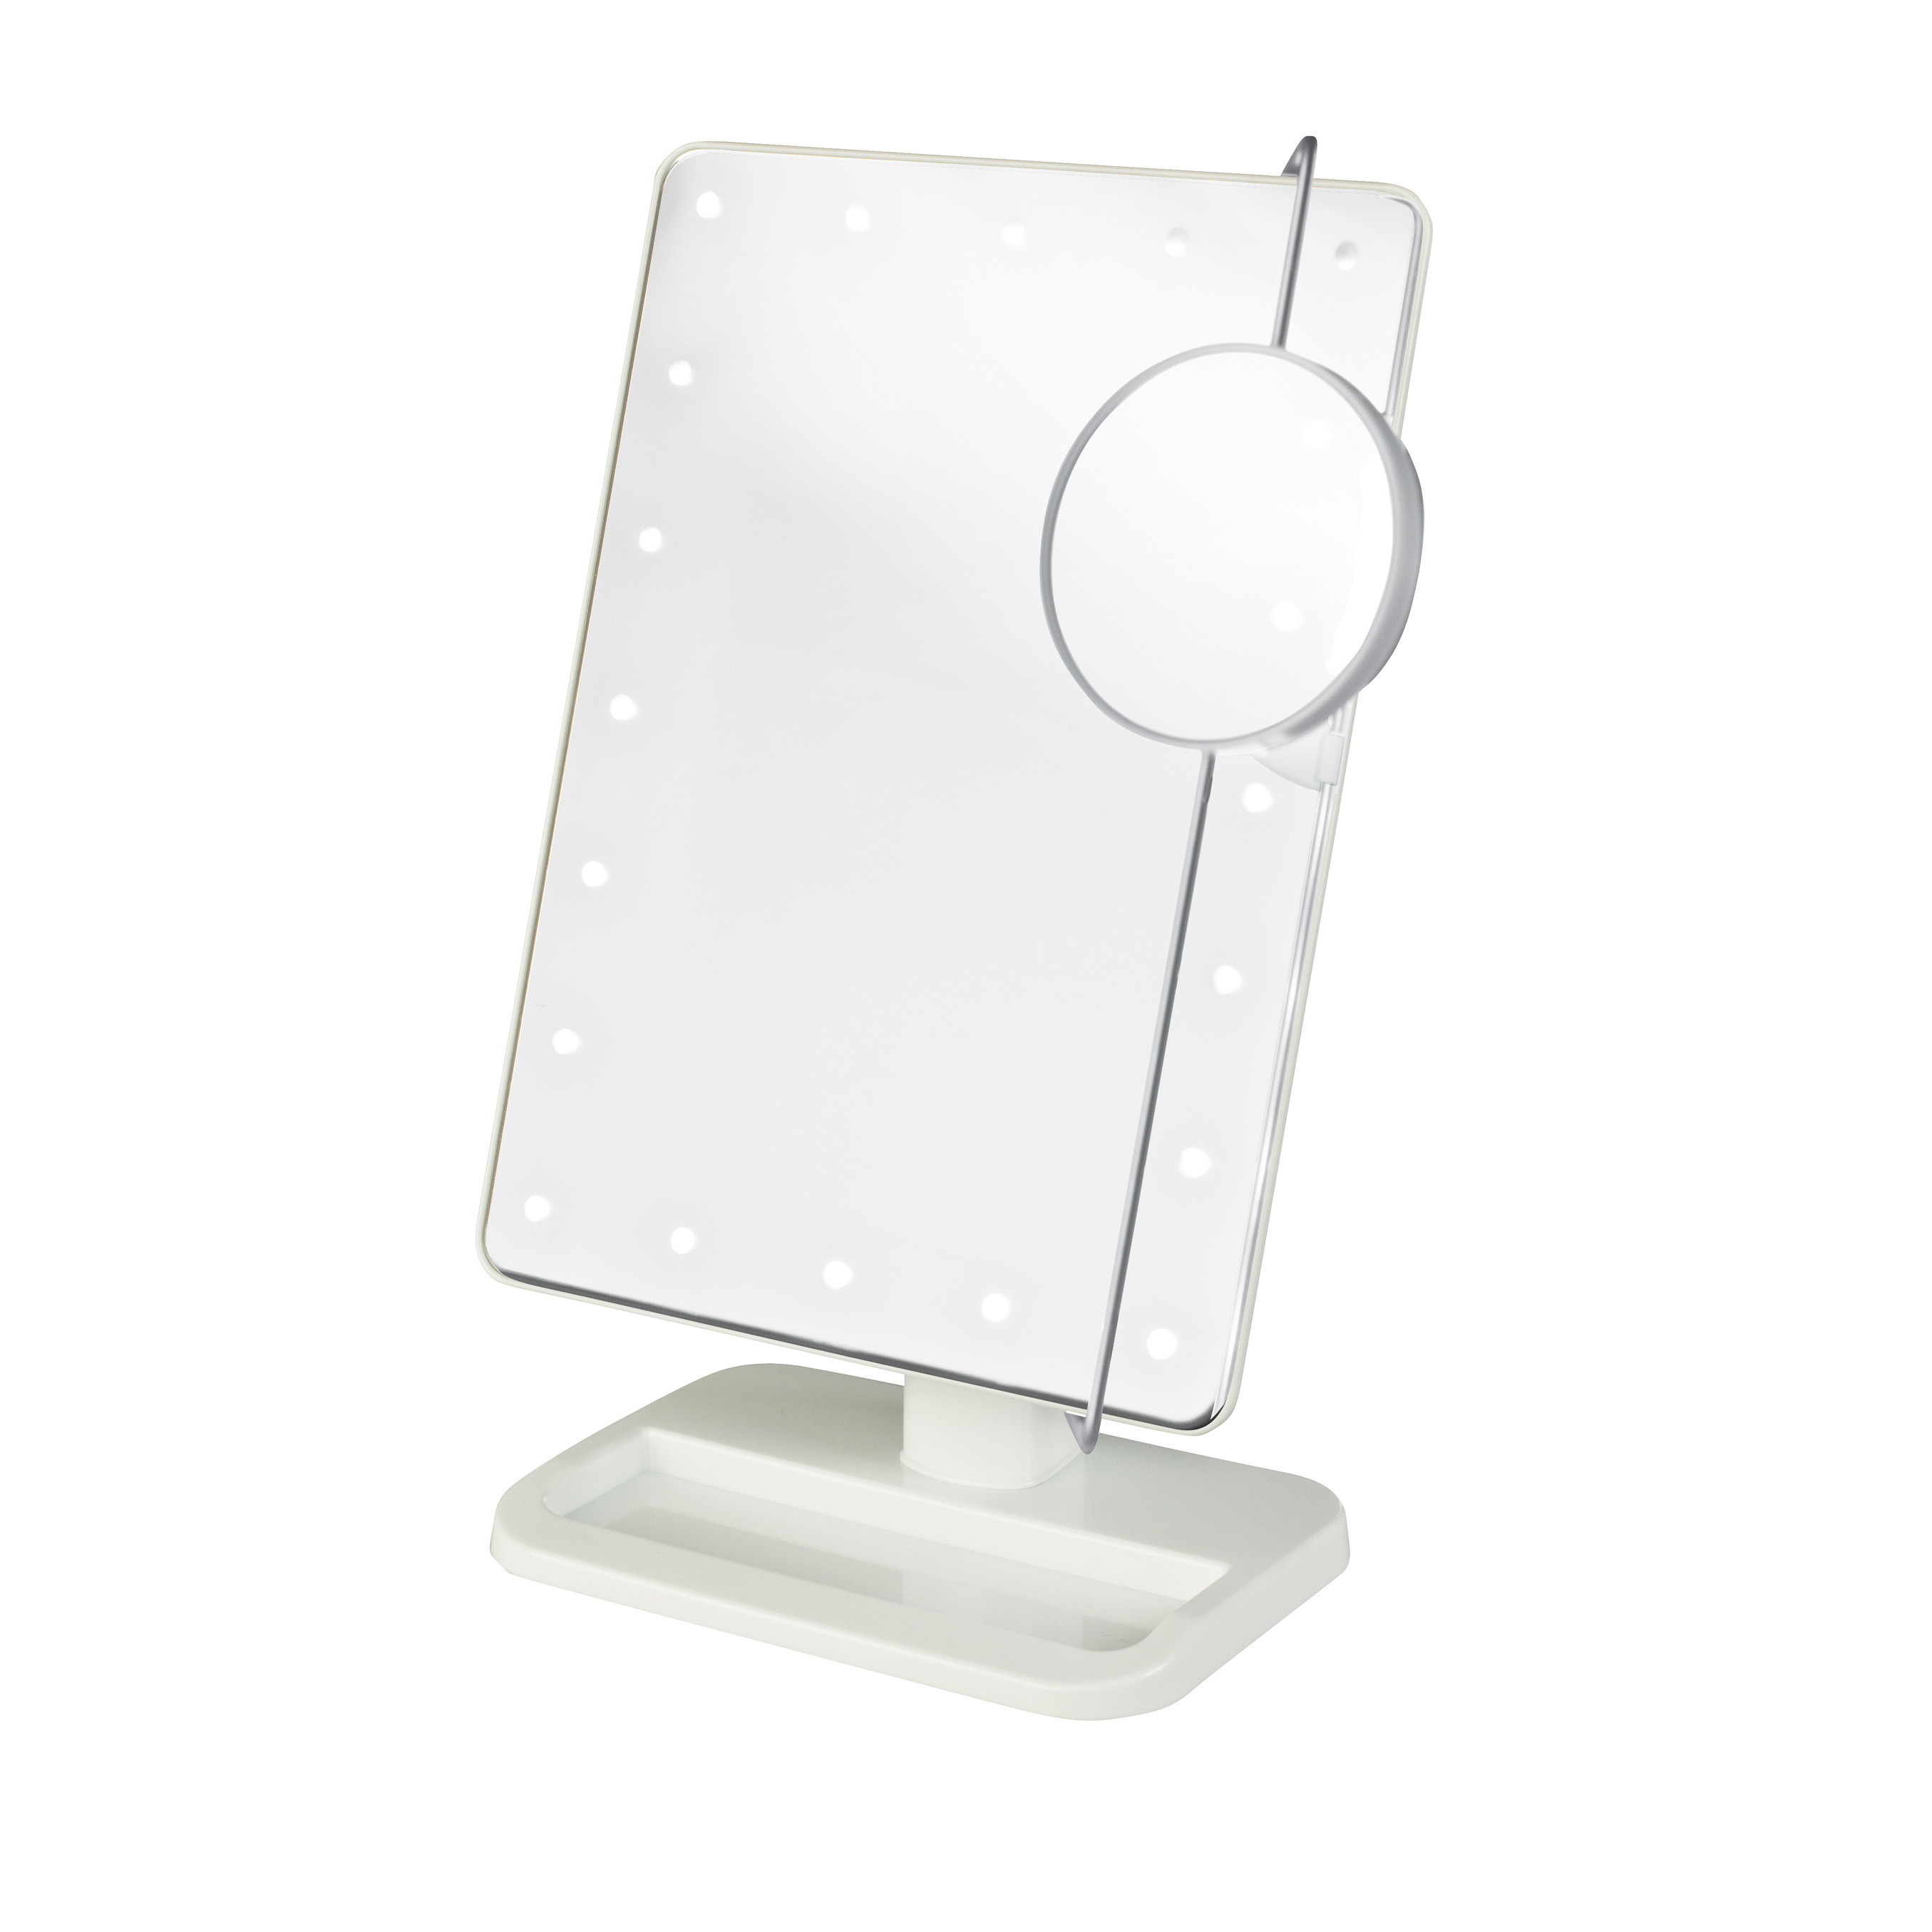 Wonderful conair makeup mirror for furniture accessories ideas with conair double-sided lighted makeup mirror